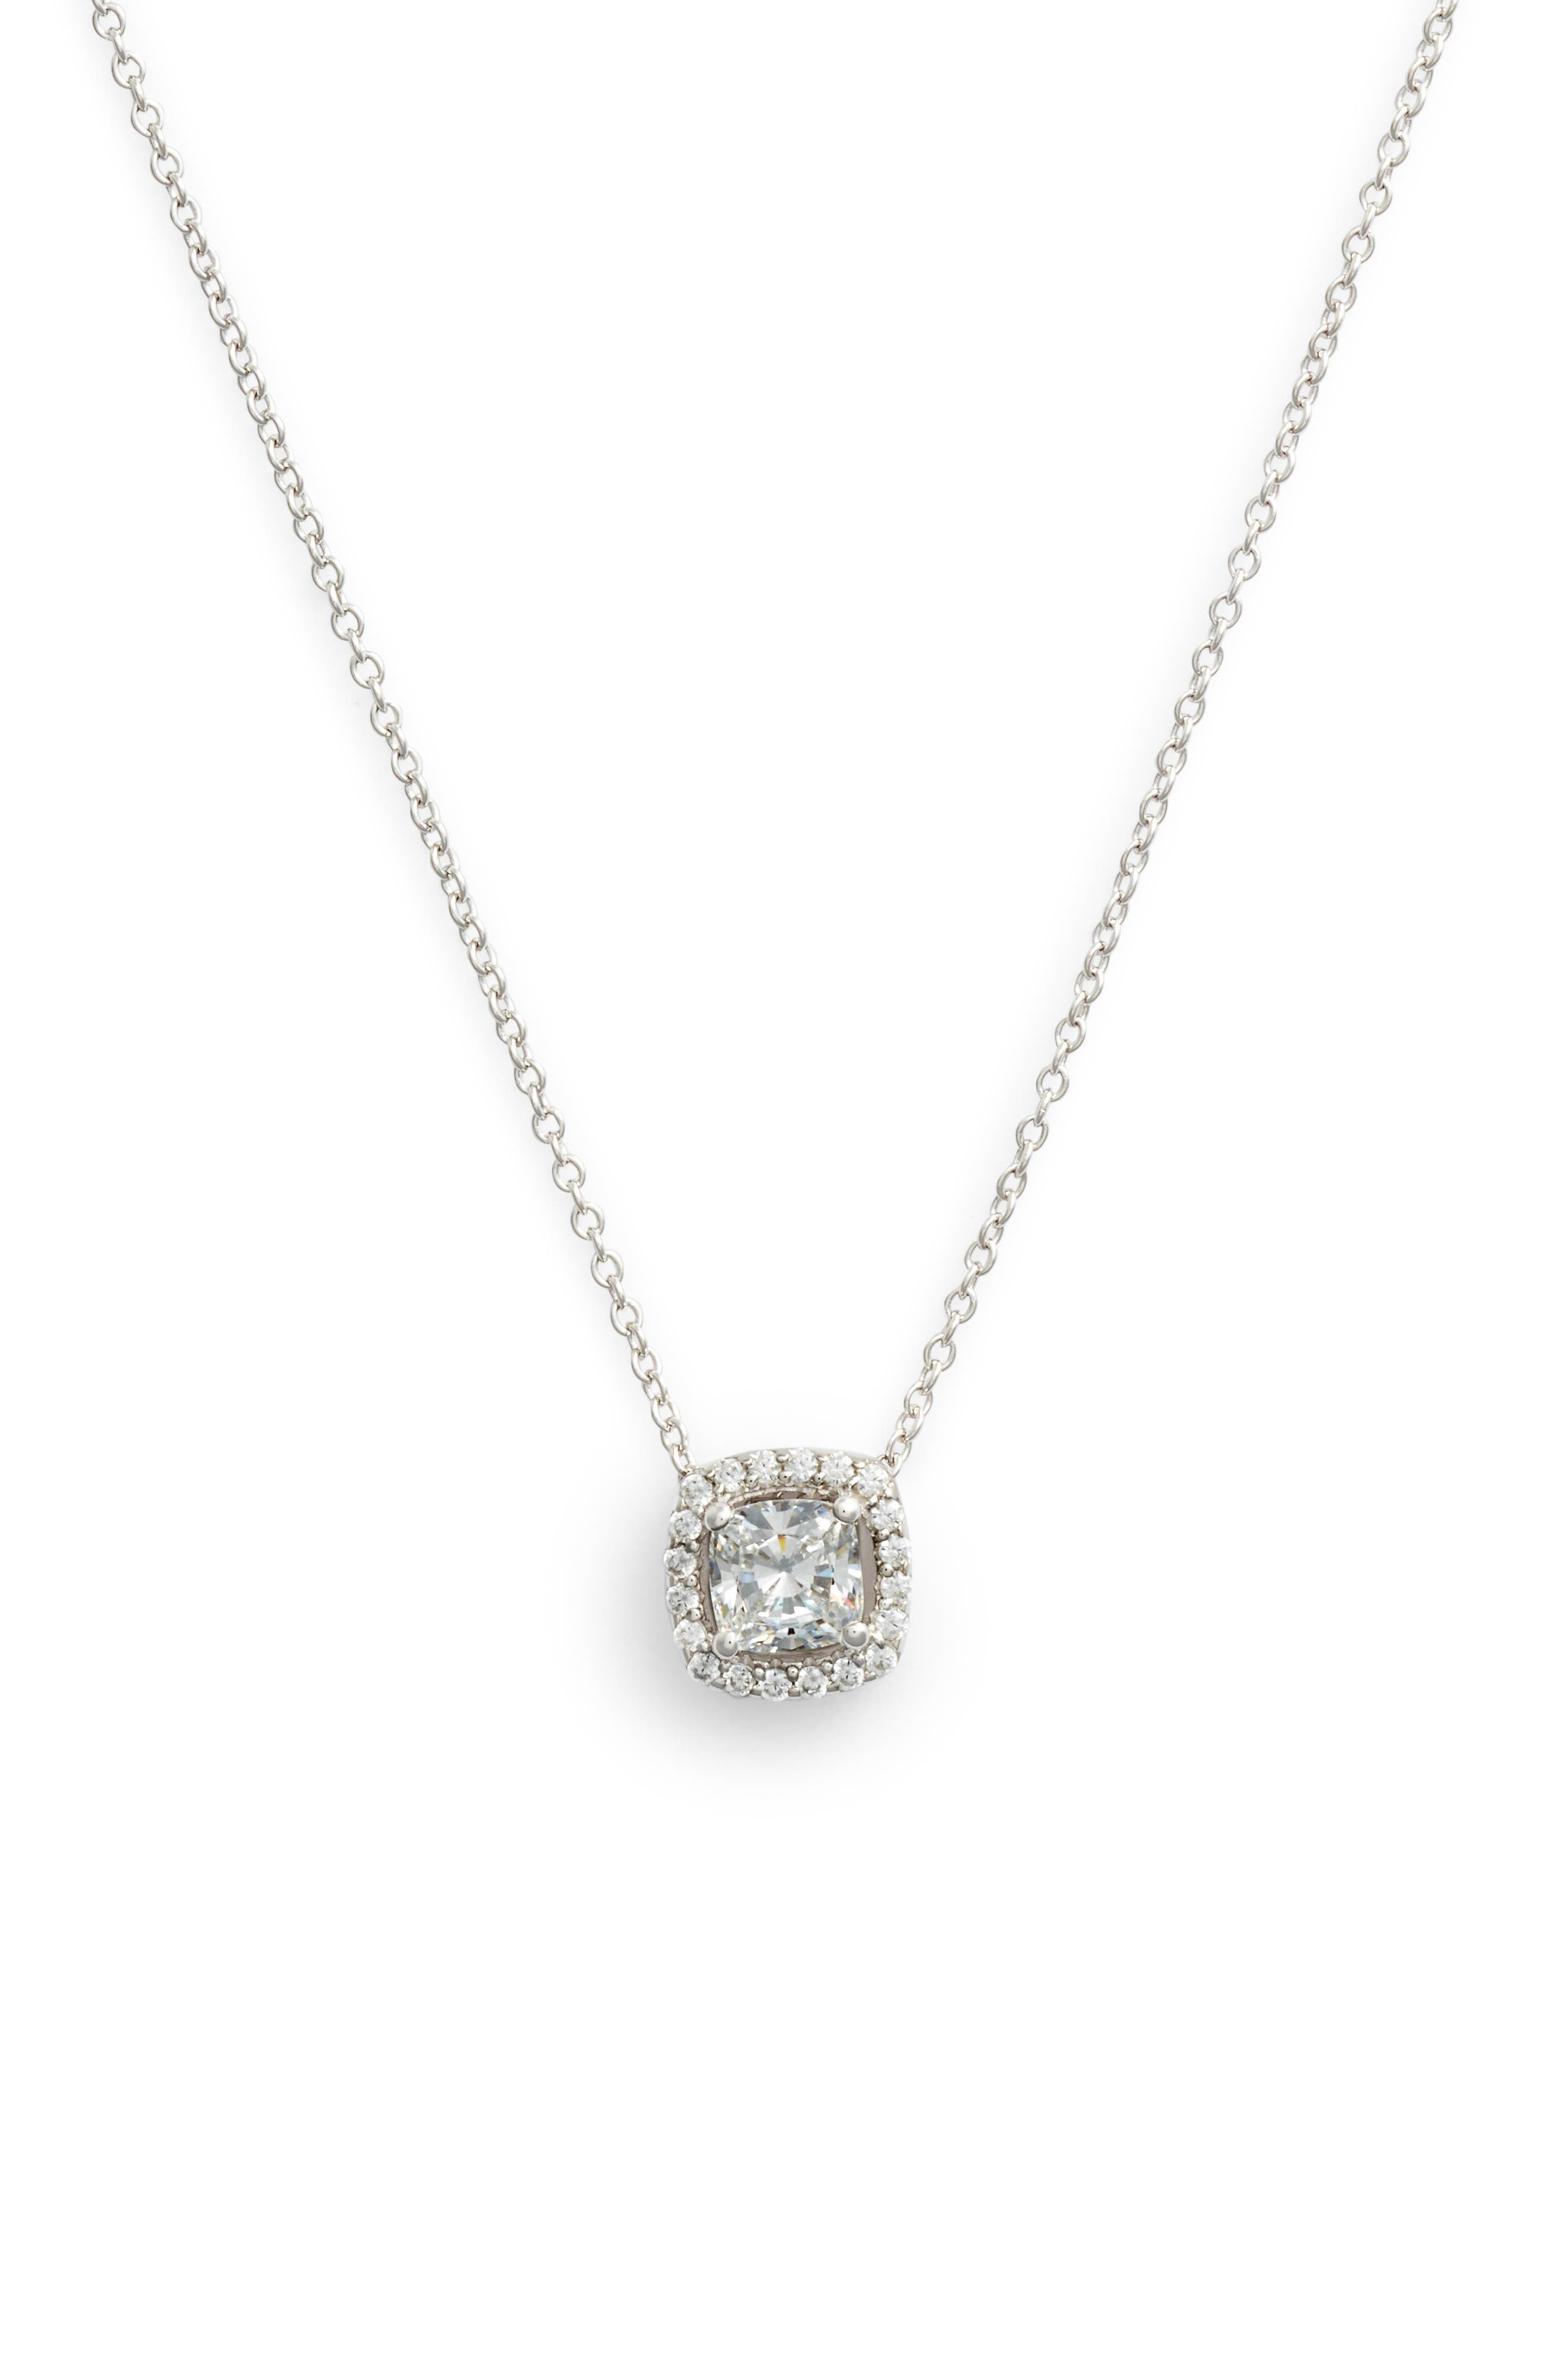 Cushion Cut Halo Necklace,                         Main,                         color, Silver/ Clear